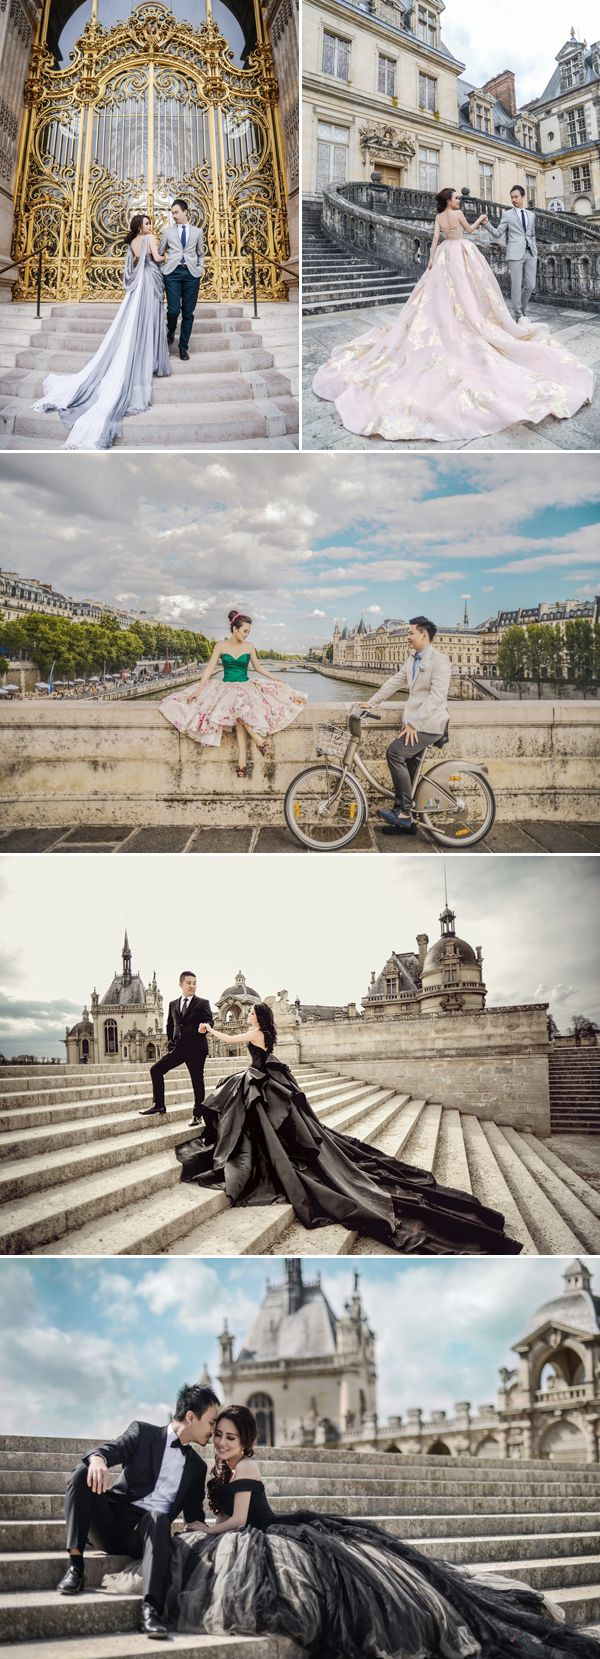 The Most Romantic Getaway! 35 Breathtaking Europe Pre-wedding Photos!